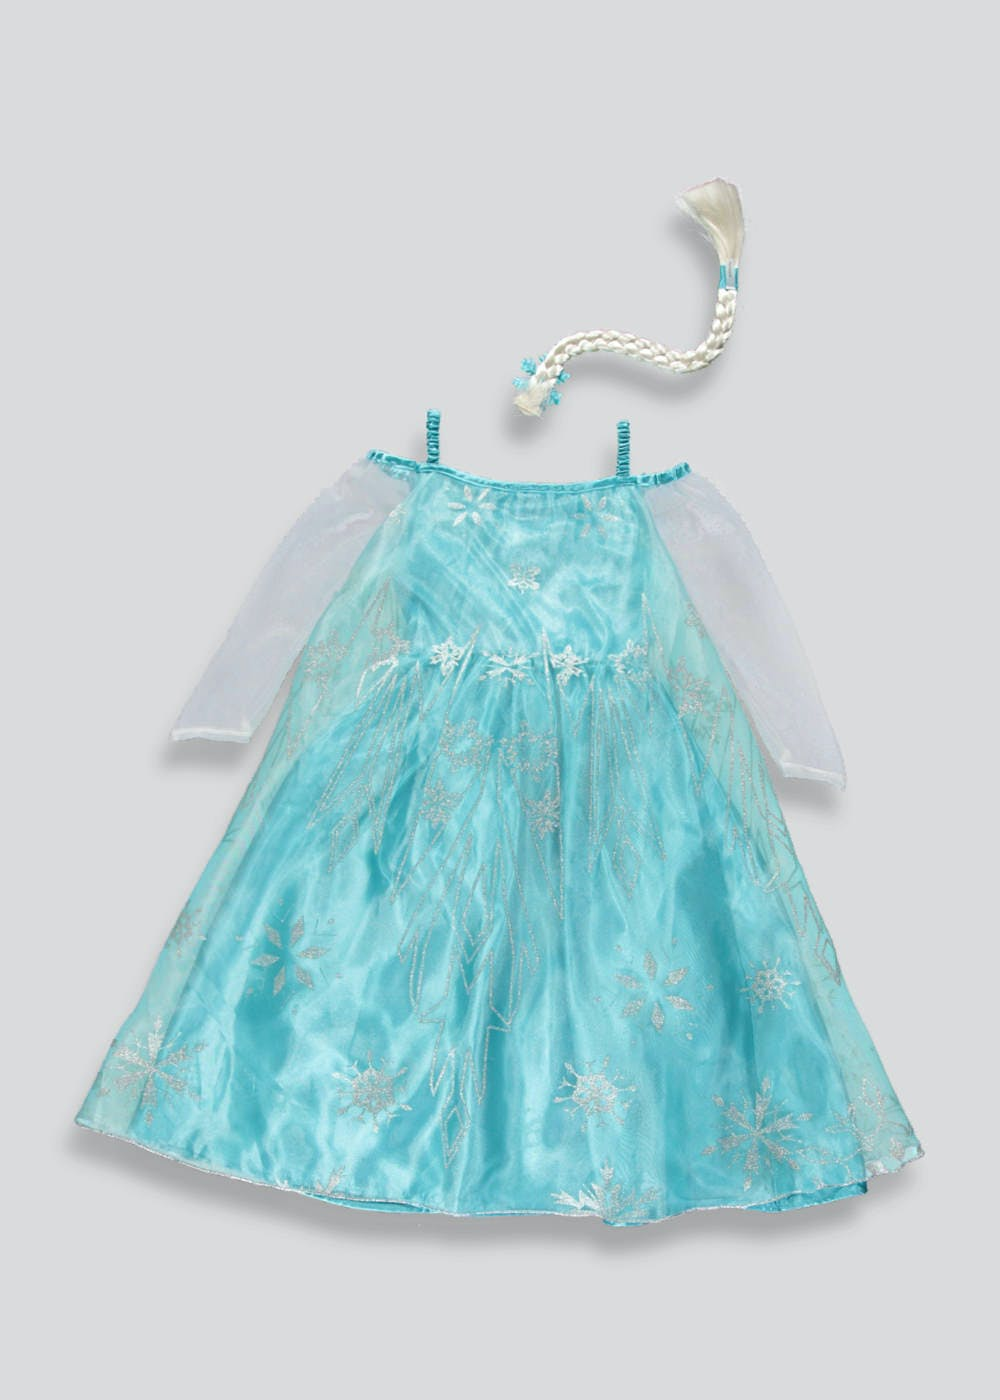 kids disney frozen elsa dress up costume 3 11yrs blue